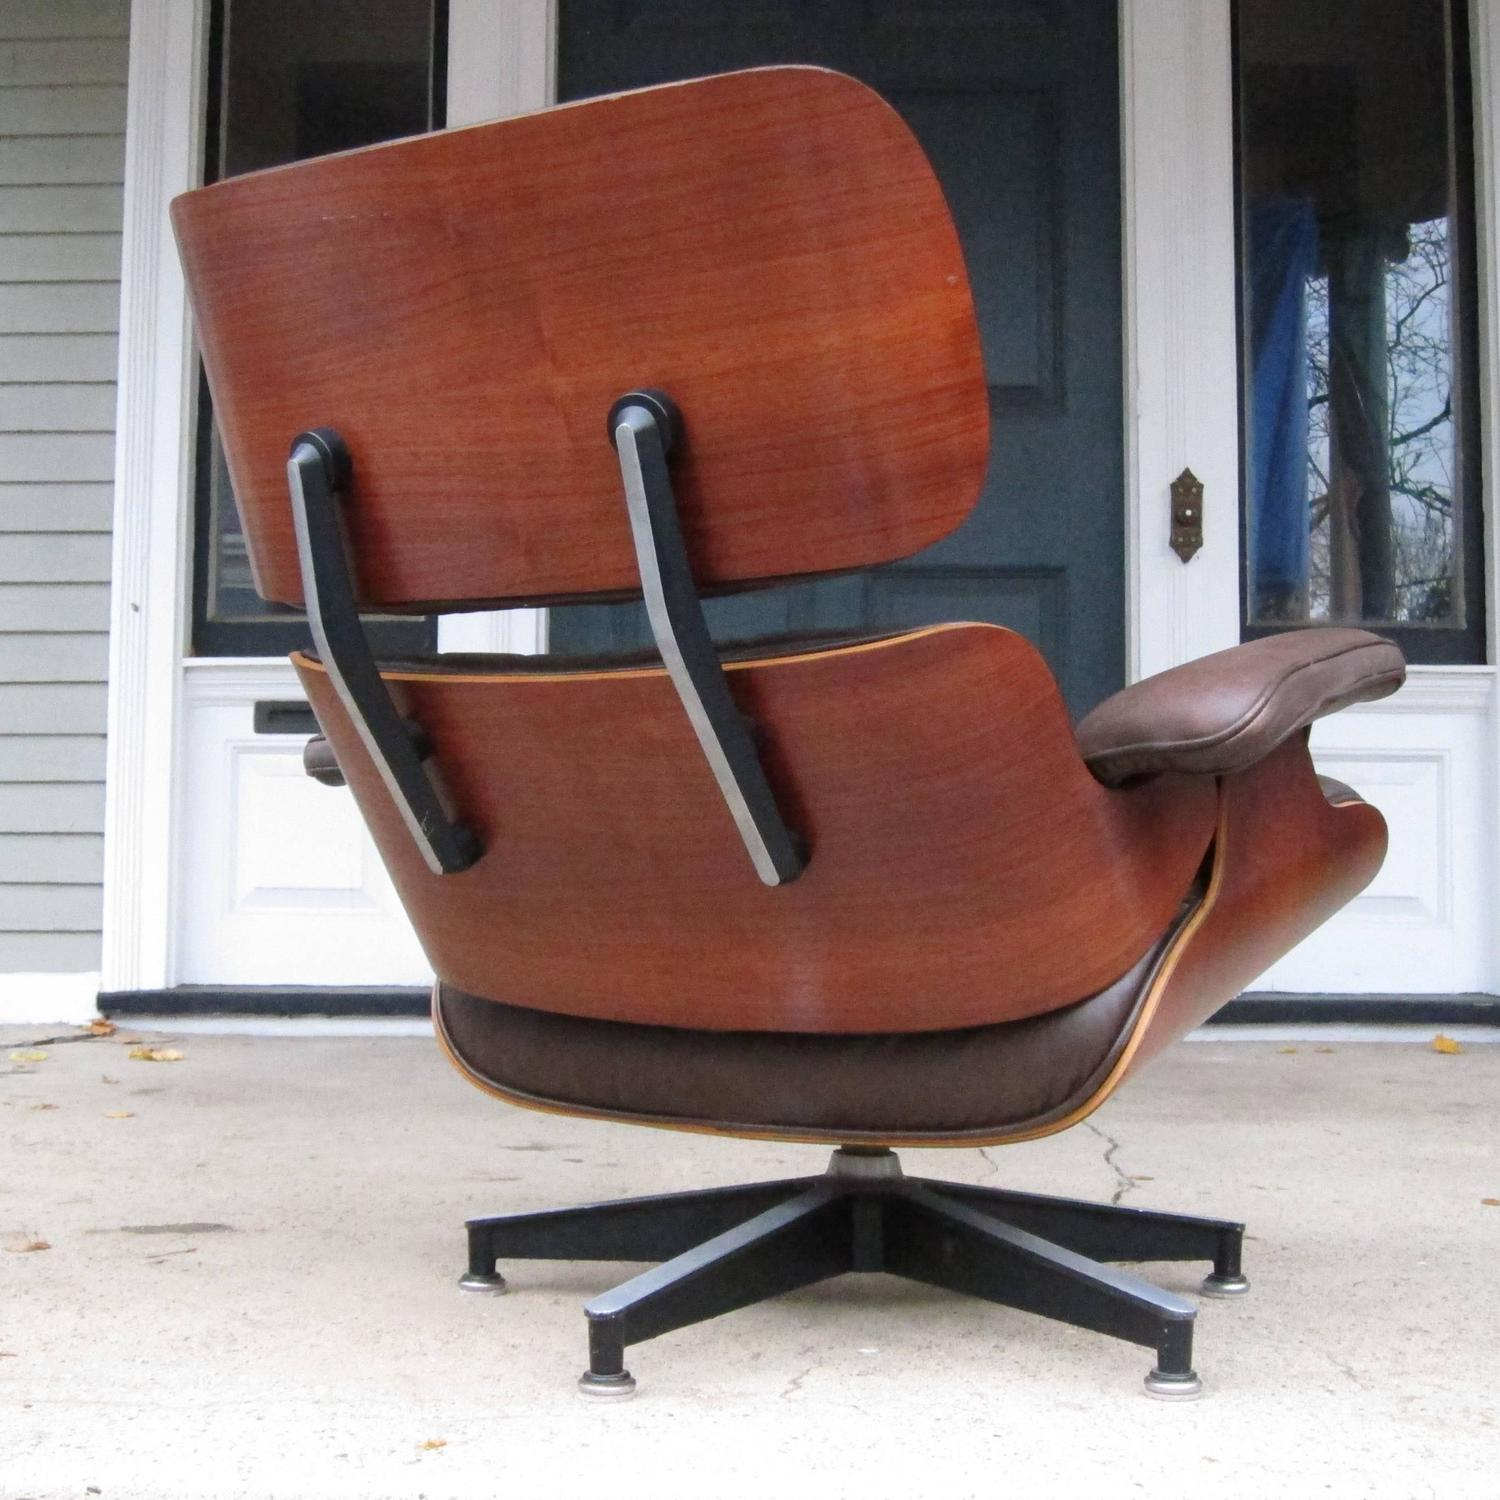 Herman miller eames lounge chair in brazilian rosewood at 1stdibs - Eames chair shock mounts ...